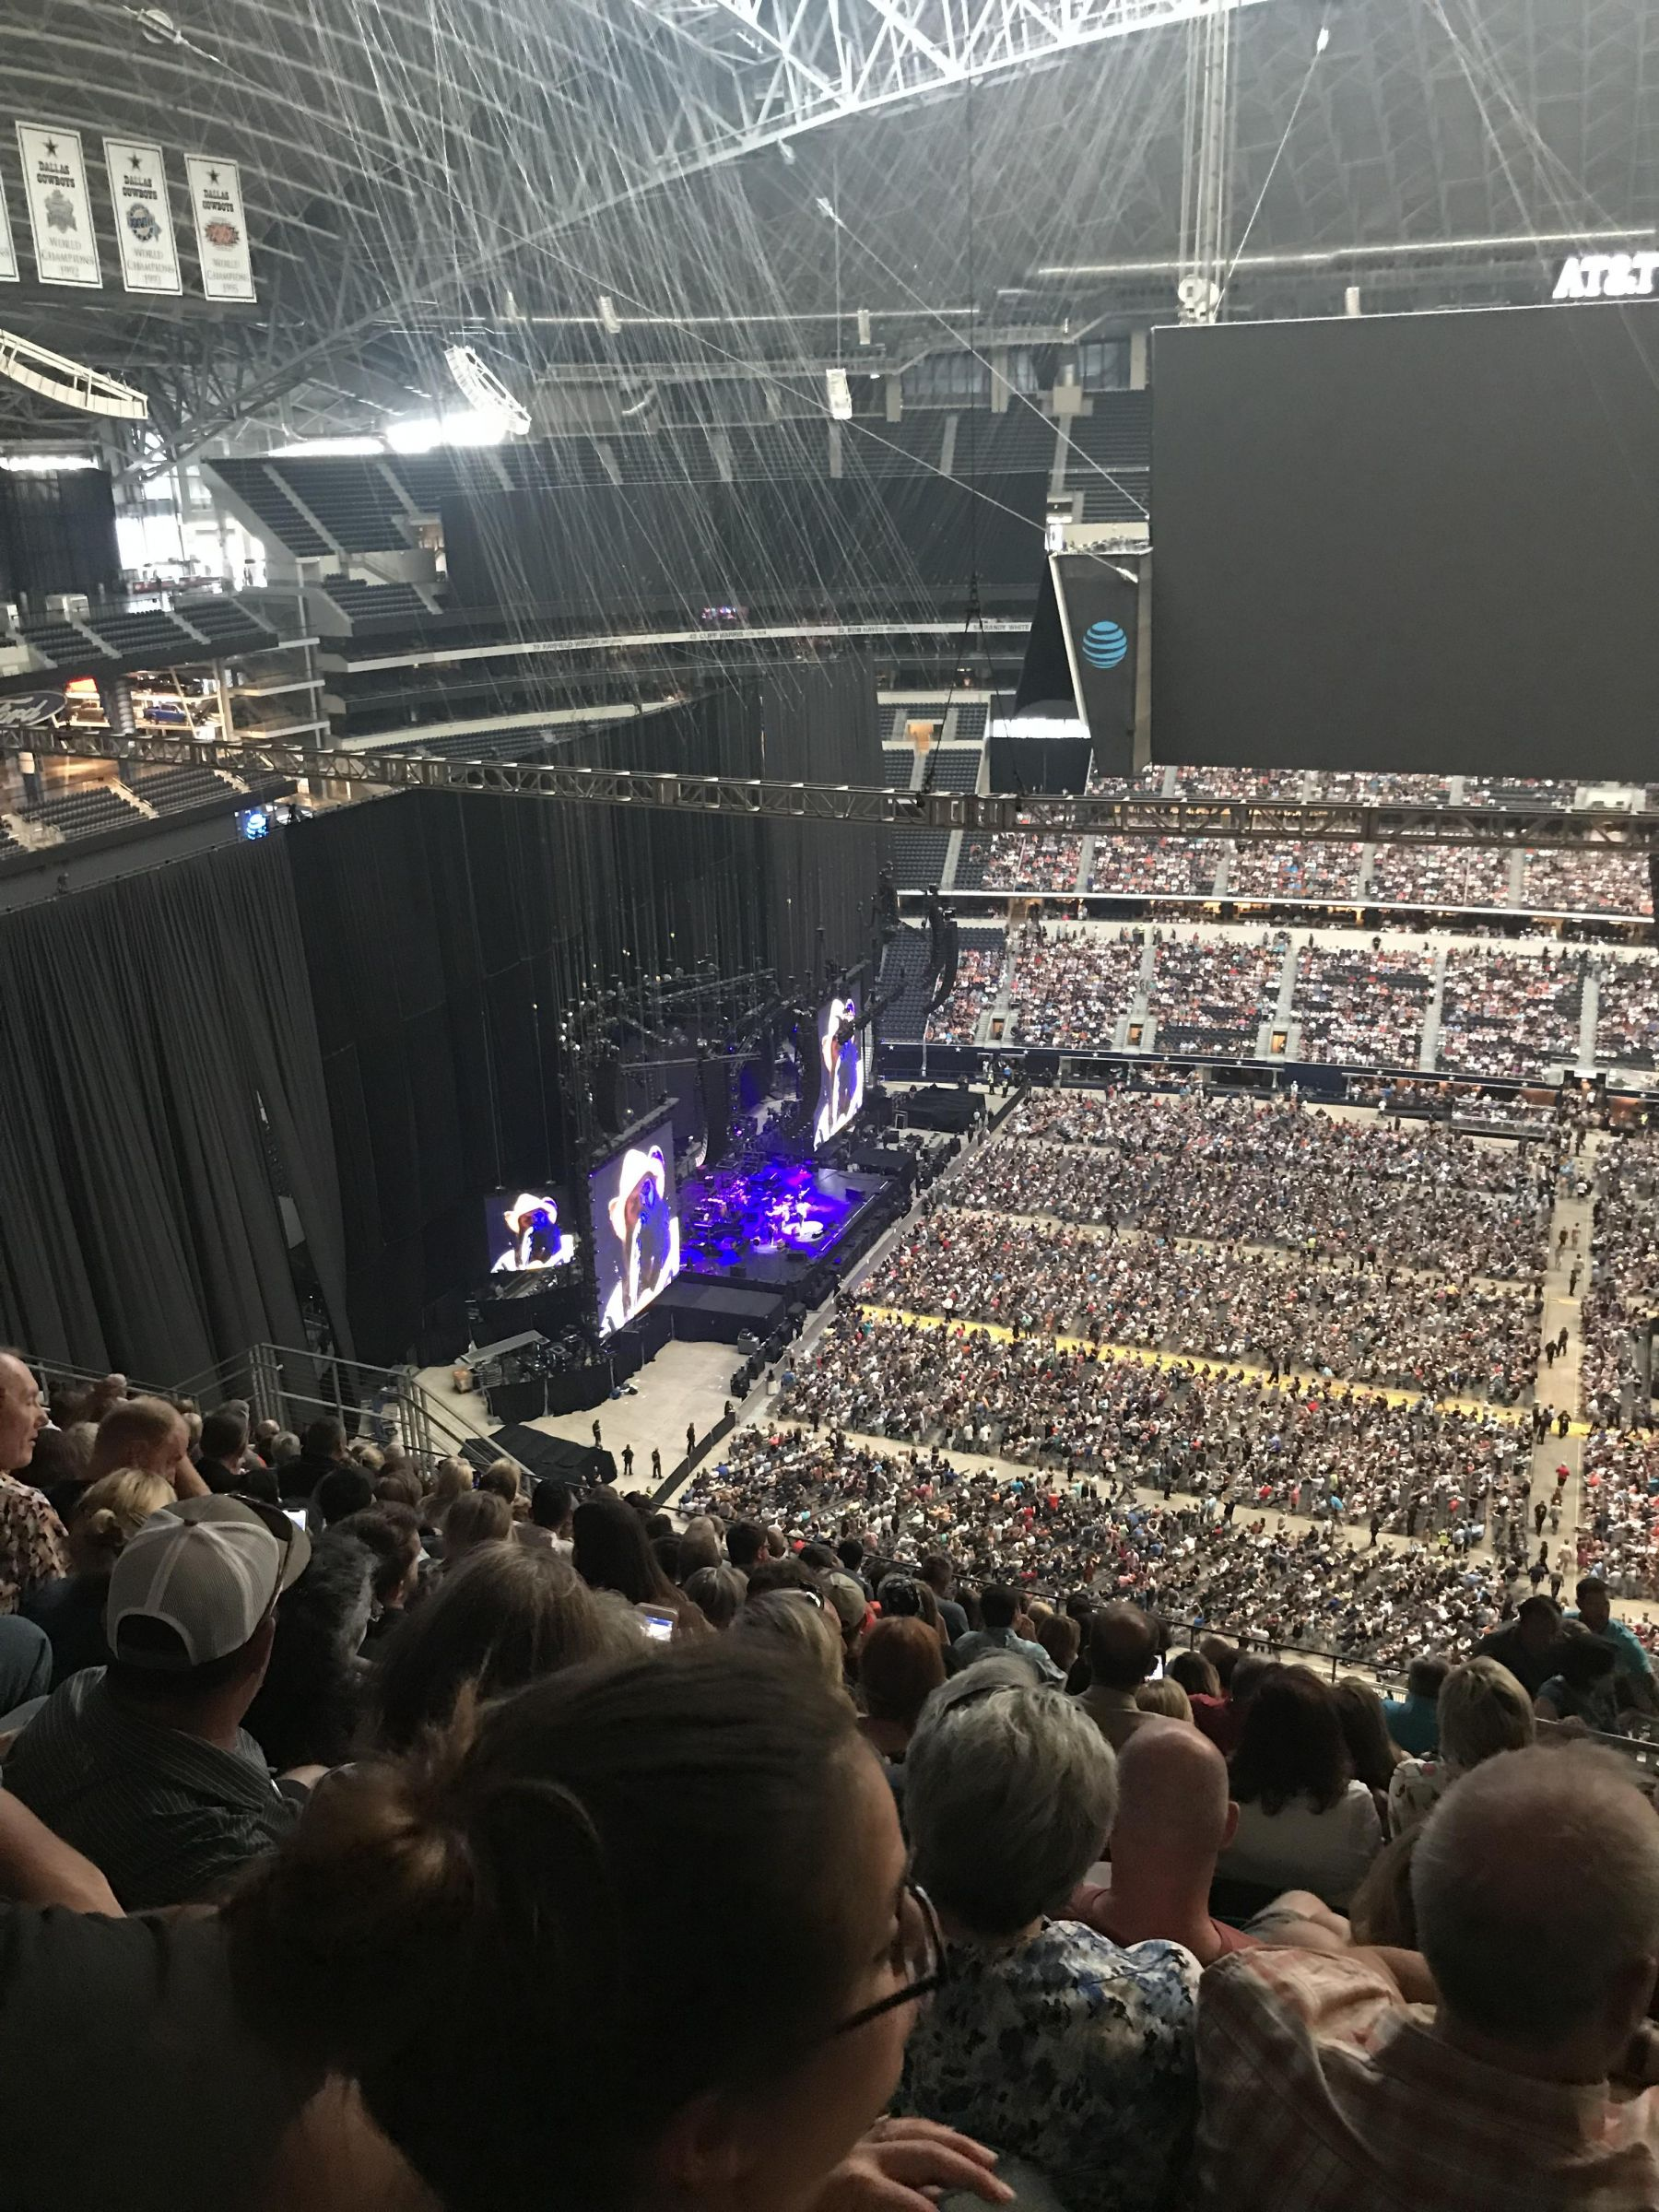 Concert Seat View for AT&T Stadium Section 443, Row 22, Seat 4